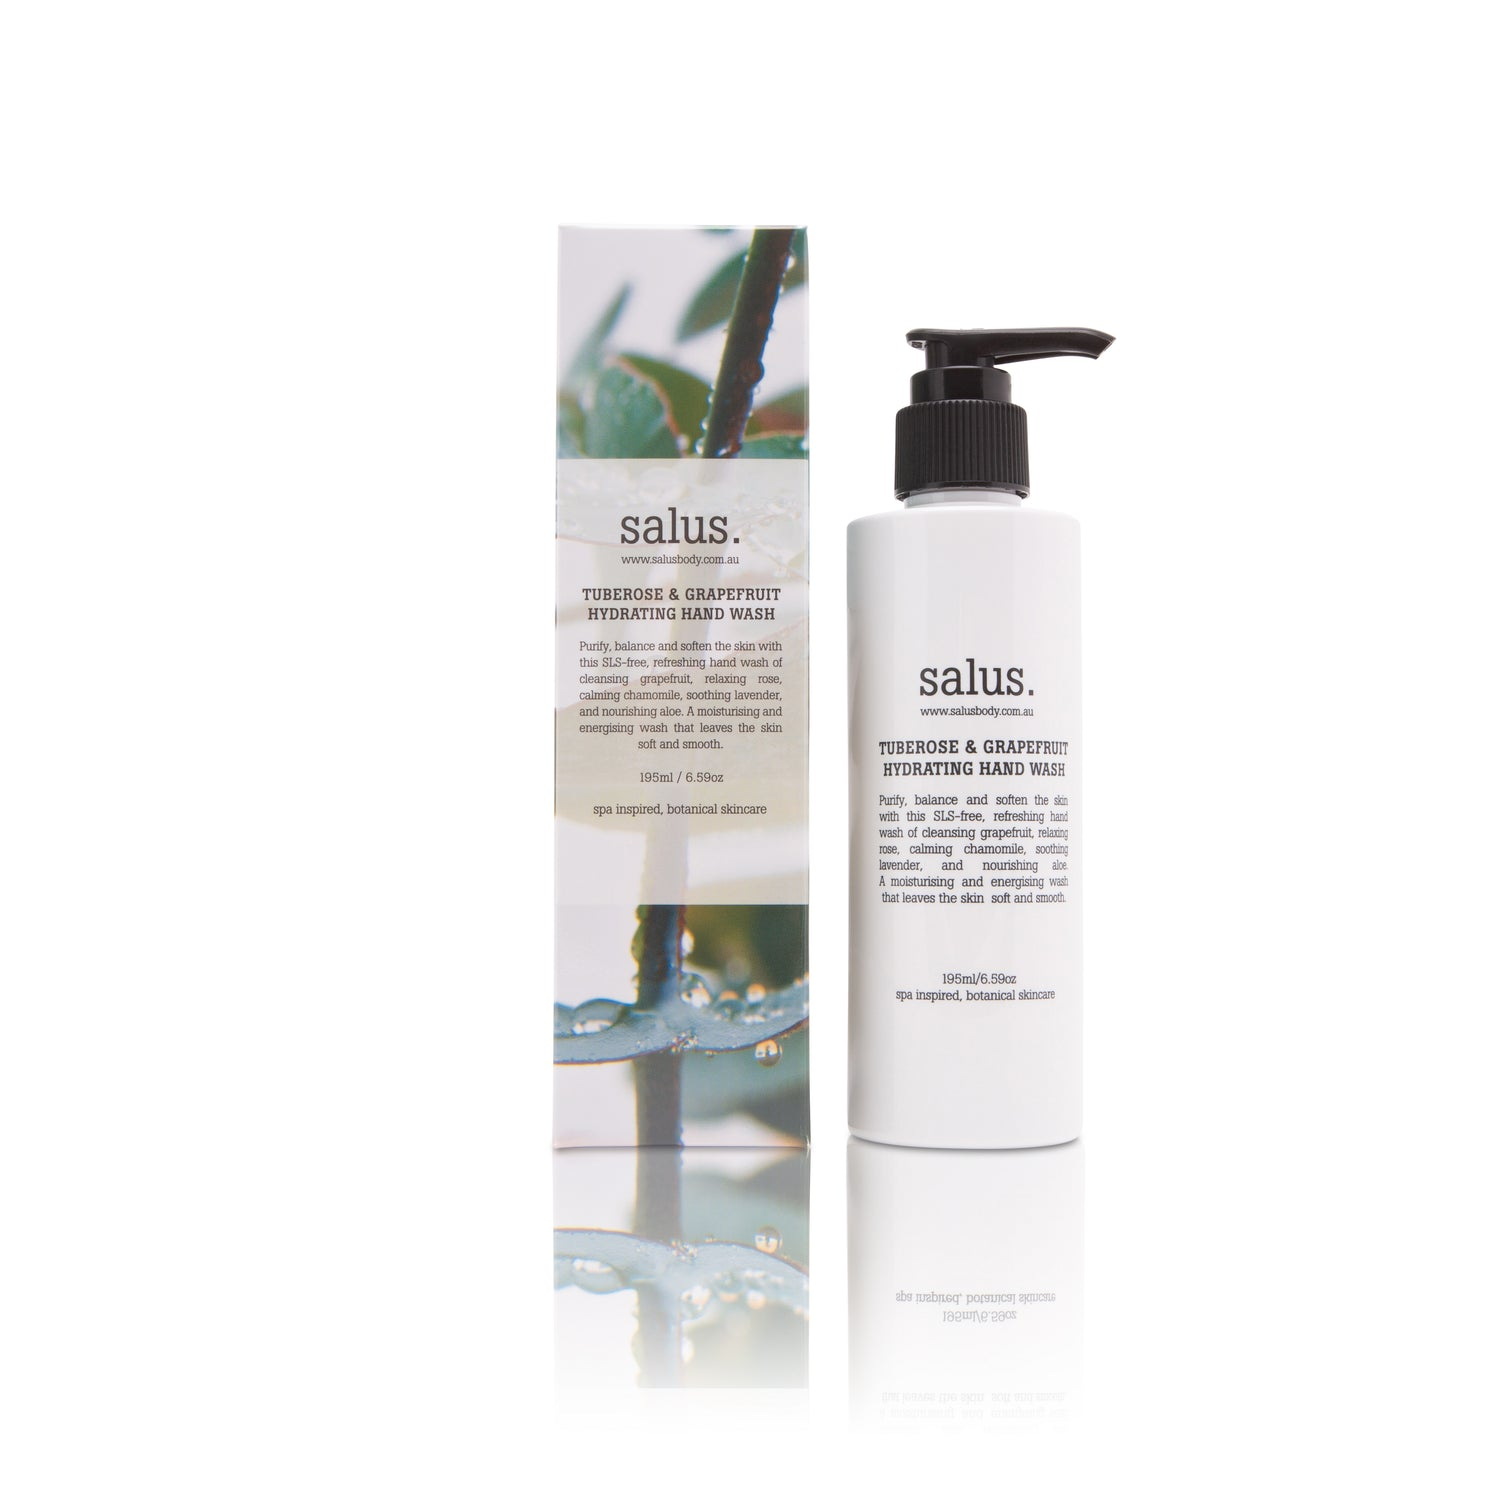 Salus Hand Washes